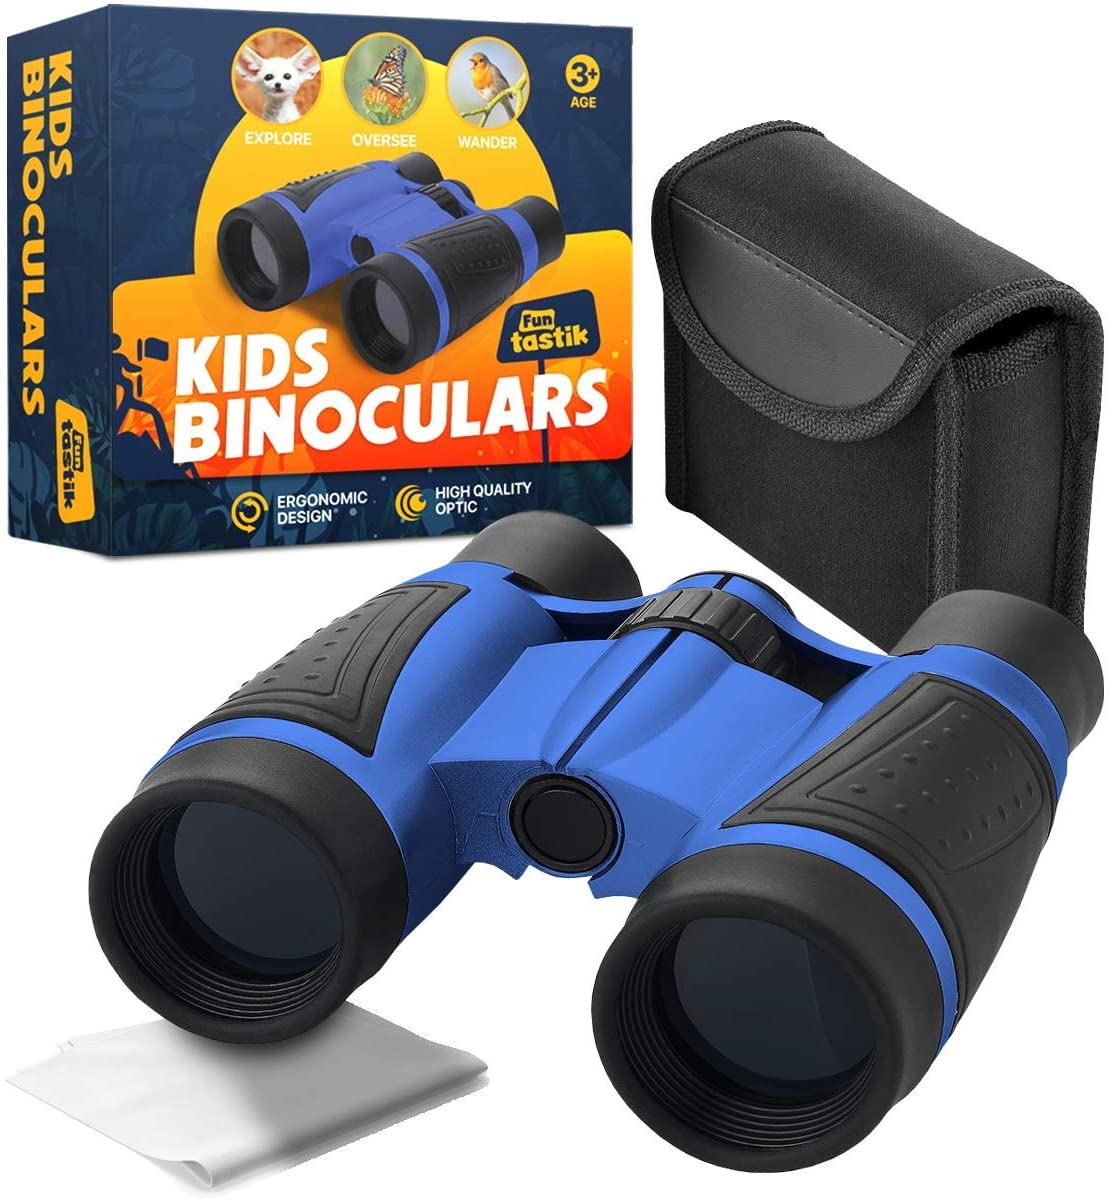 14 toys for kids from amazon that have a 5-star rating and over 500 reviews   we gathered 14 toys for all different ages that have received more than 500 product reviews from parents and others just like you.